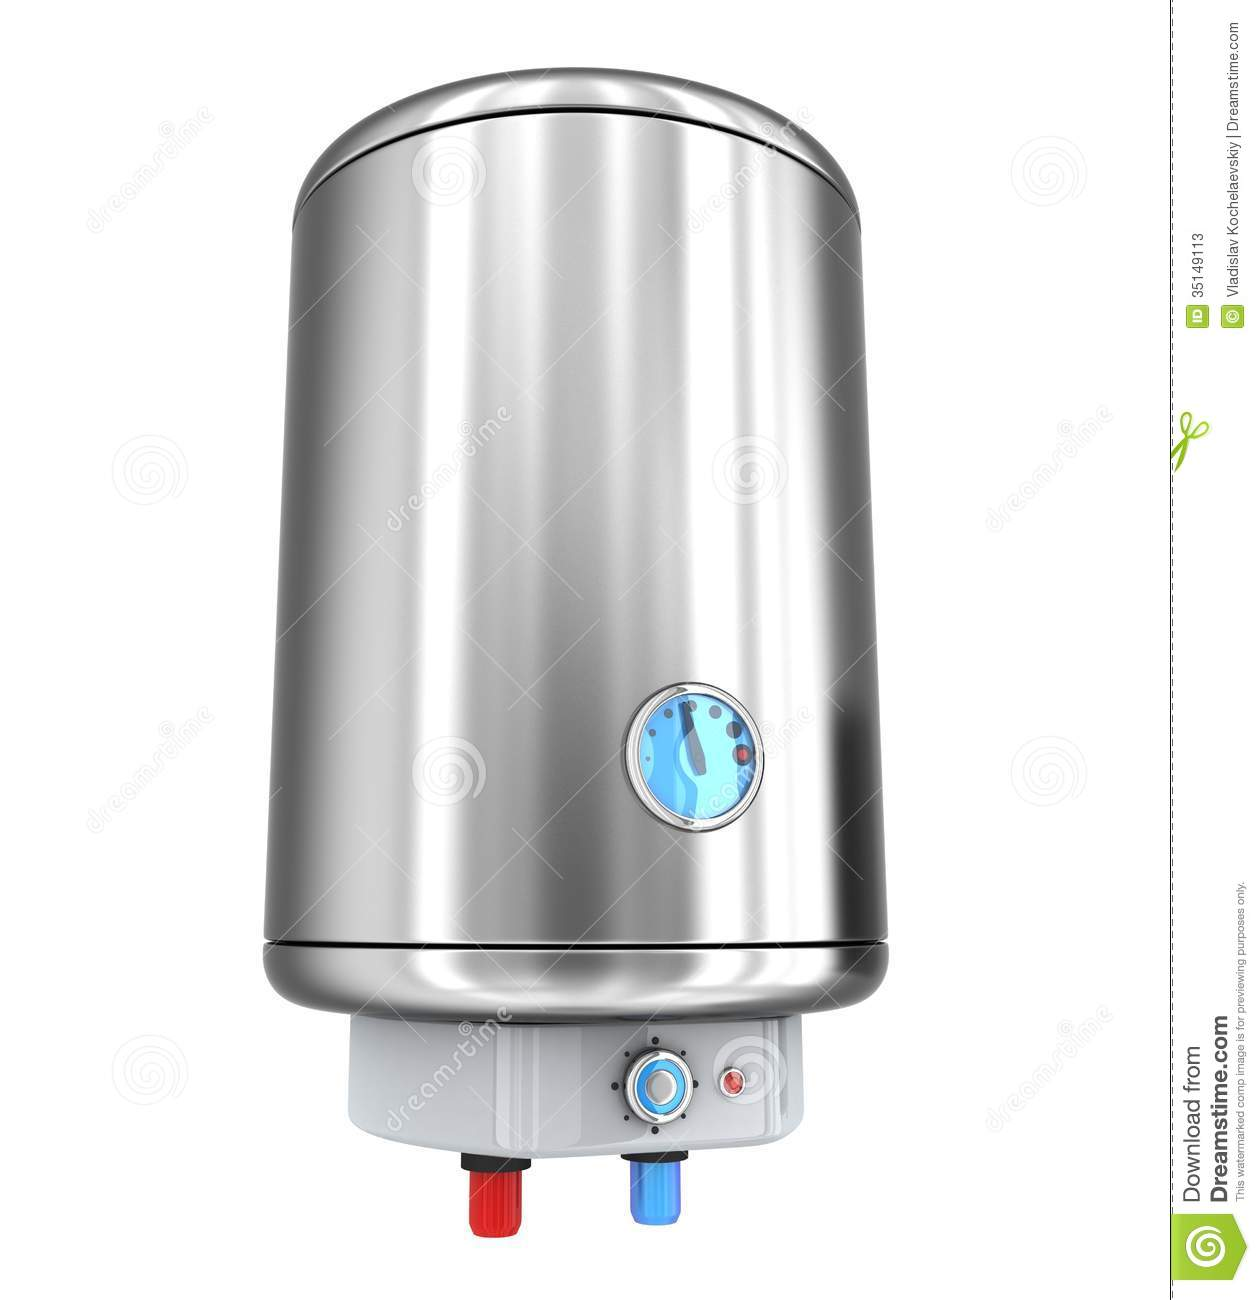 Heater Clipart Water Heater On White